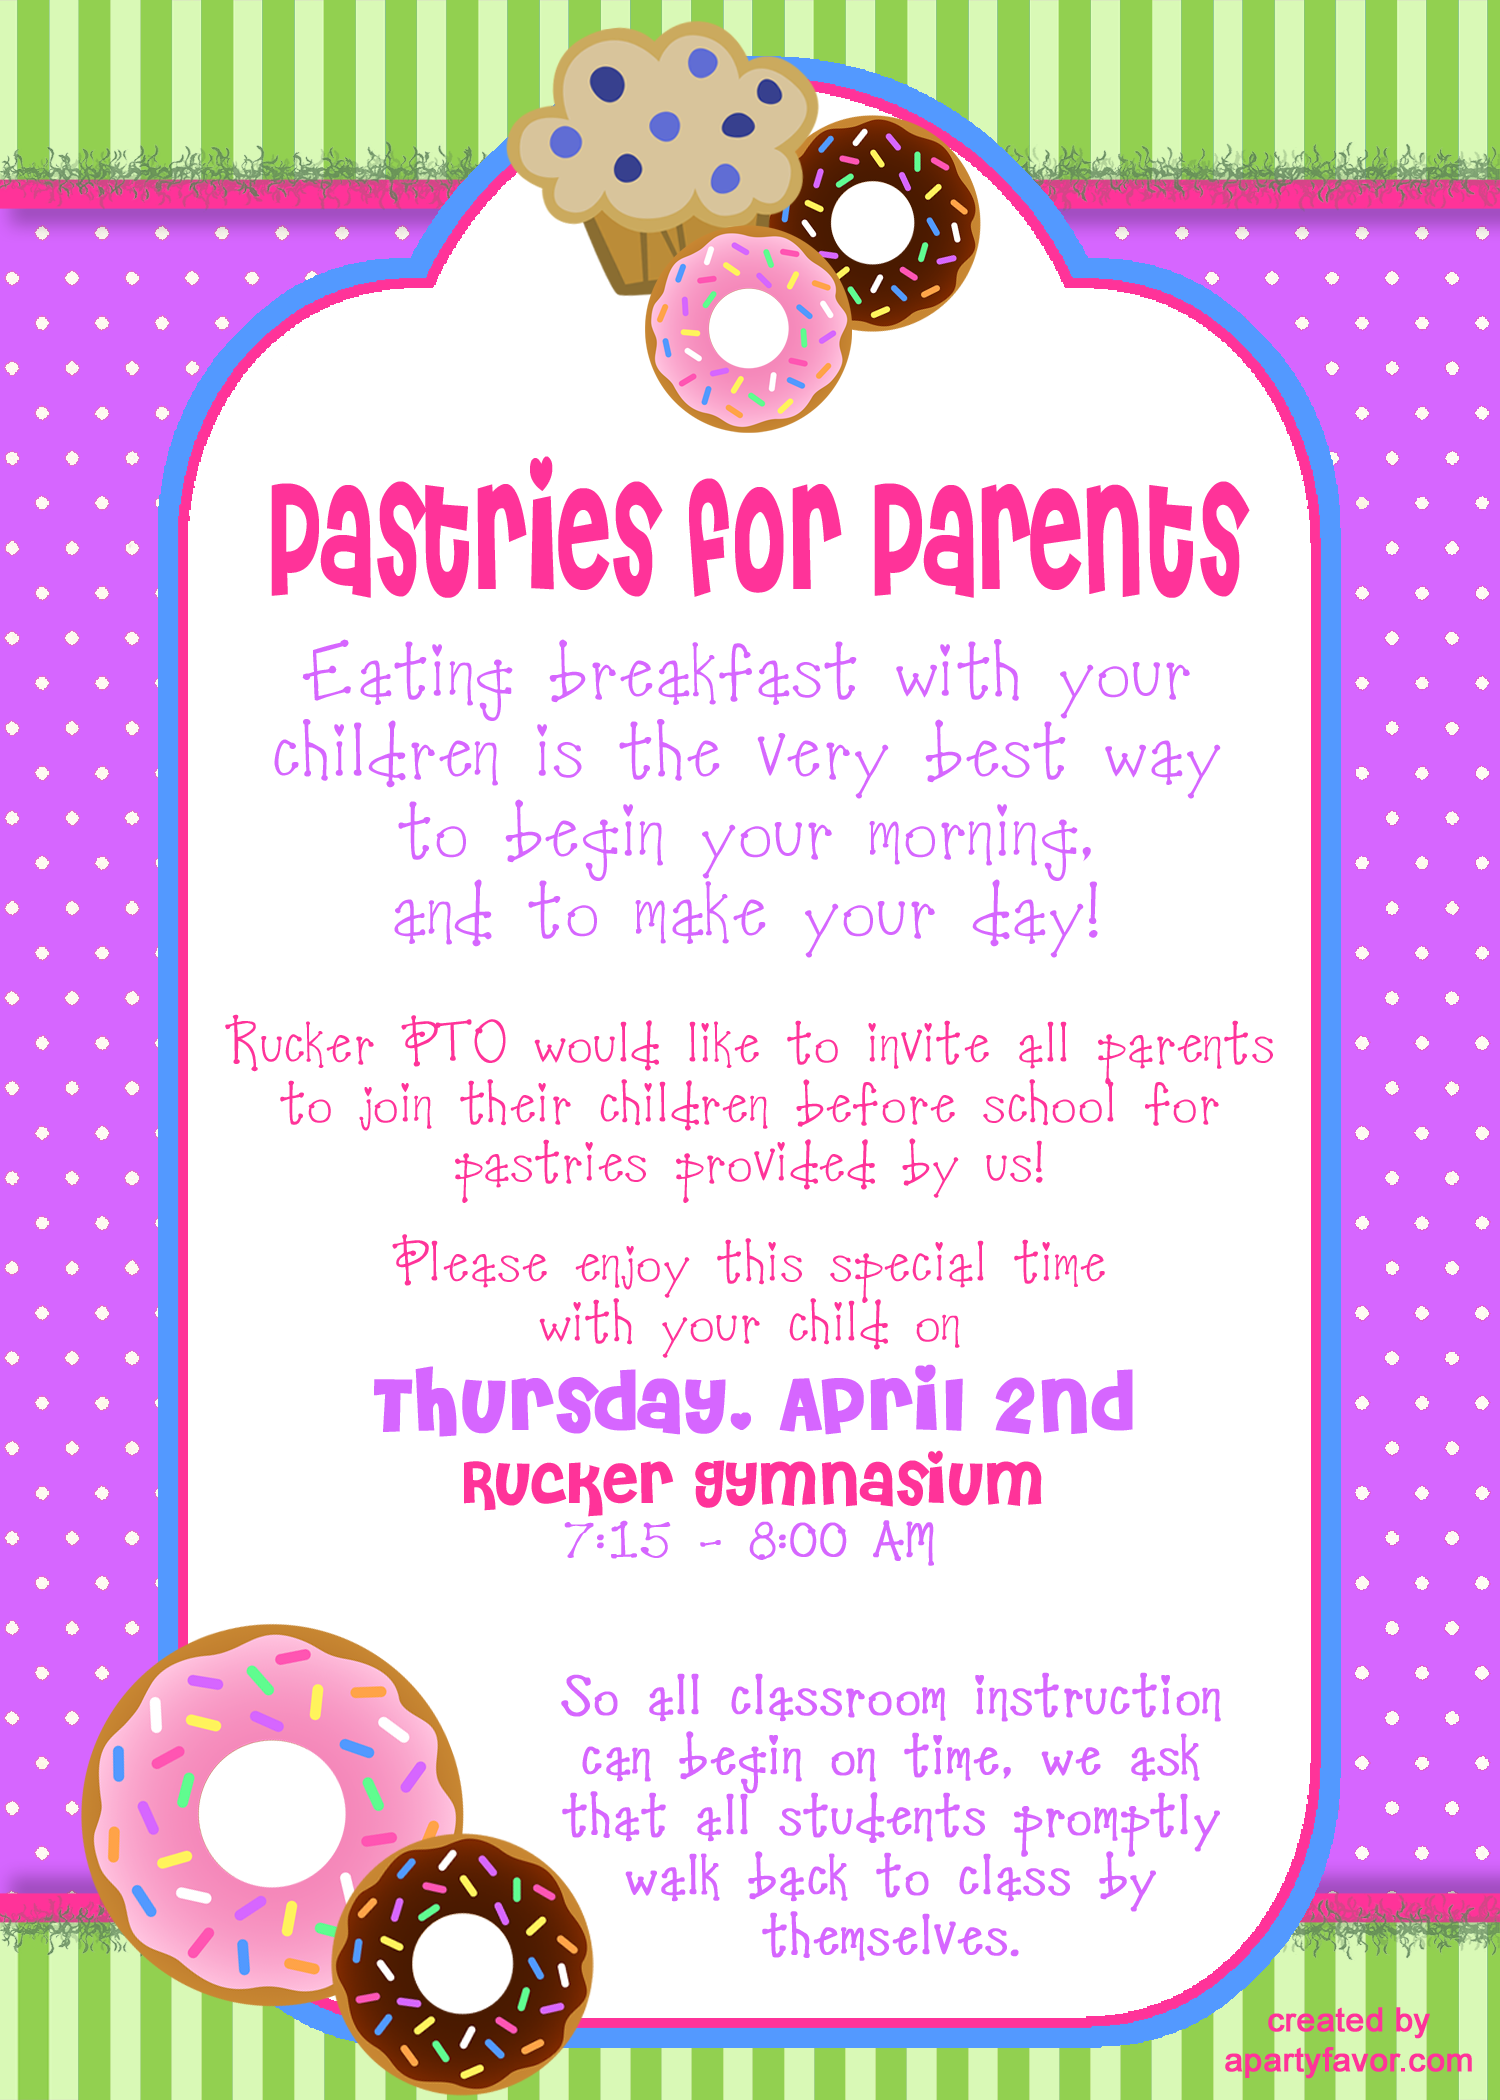 Event Flyer for Pastries for Parents | principal | Pta ...